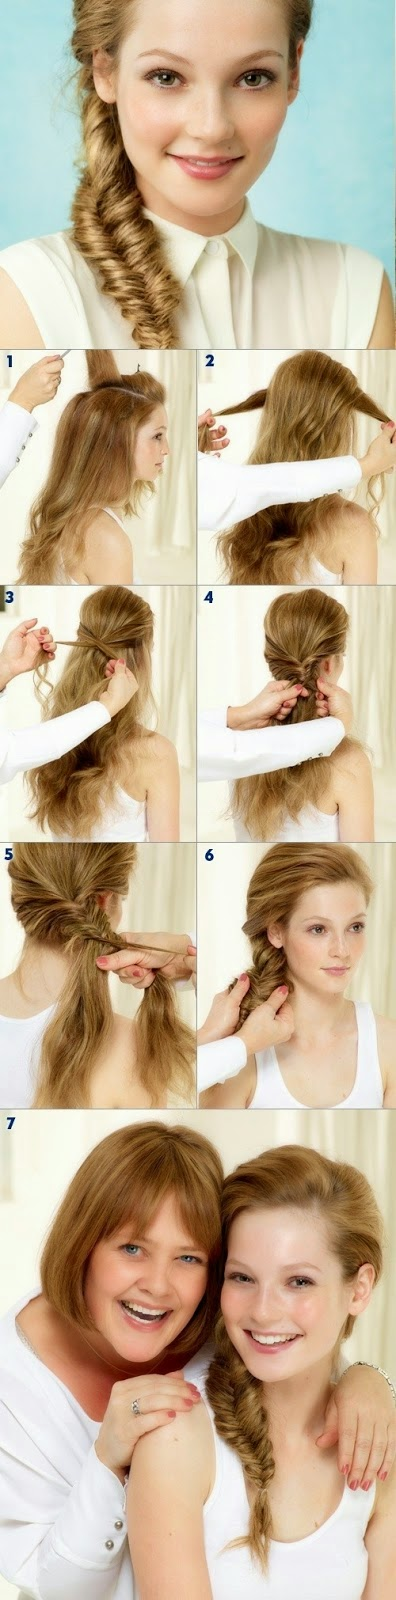 5 Awesome Hair Tutorials With Accessories}